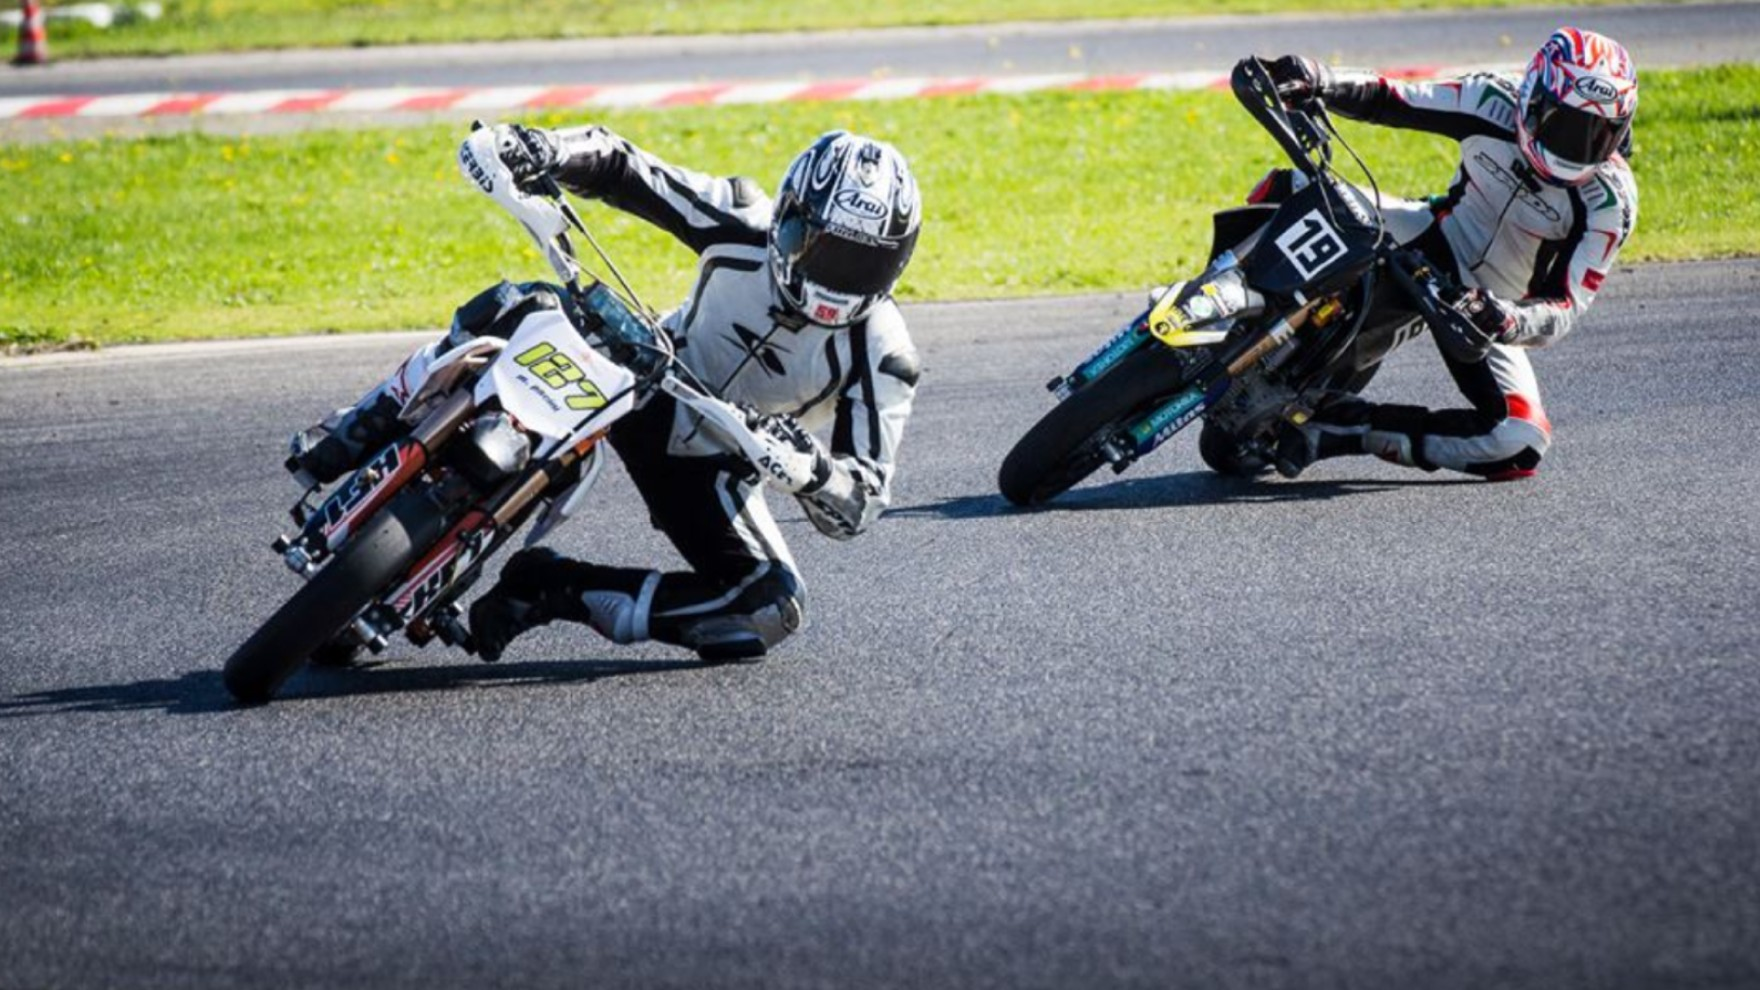 Differenza tra Pitbike e Minicross, intervista a Profive